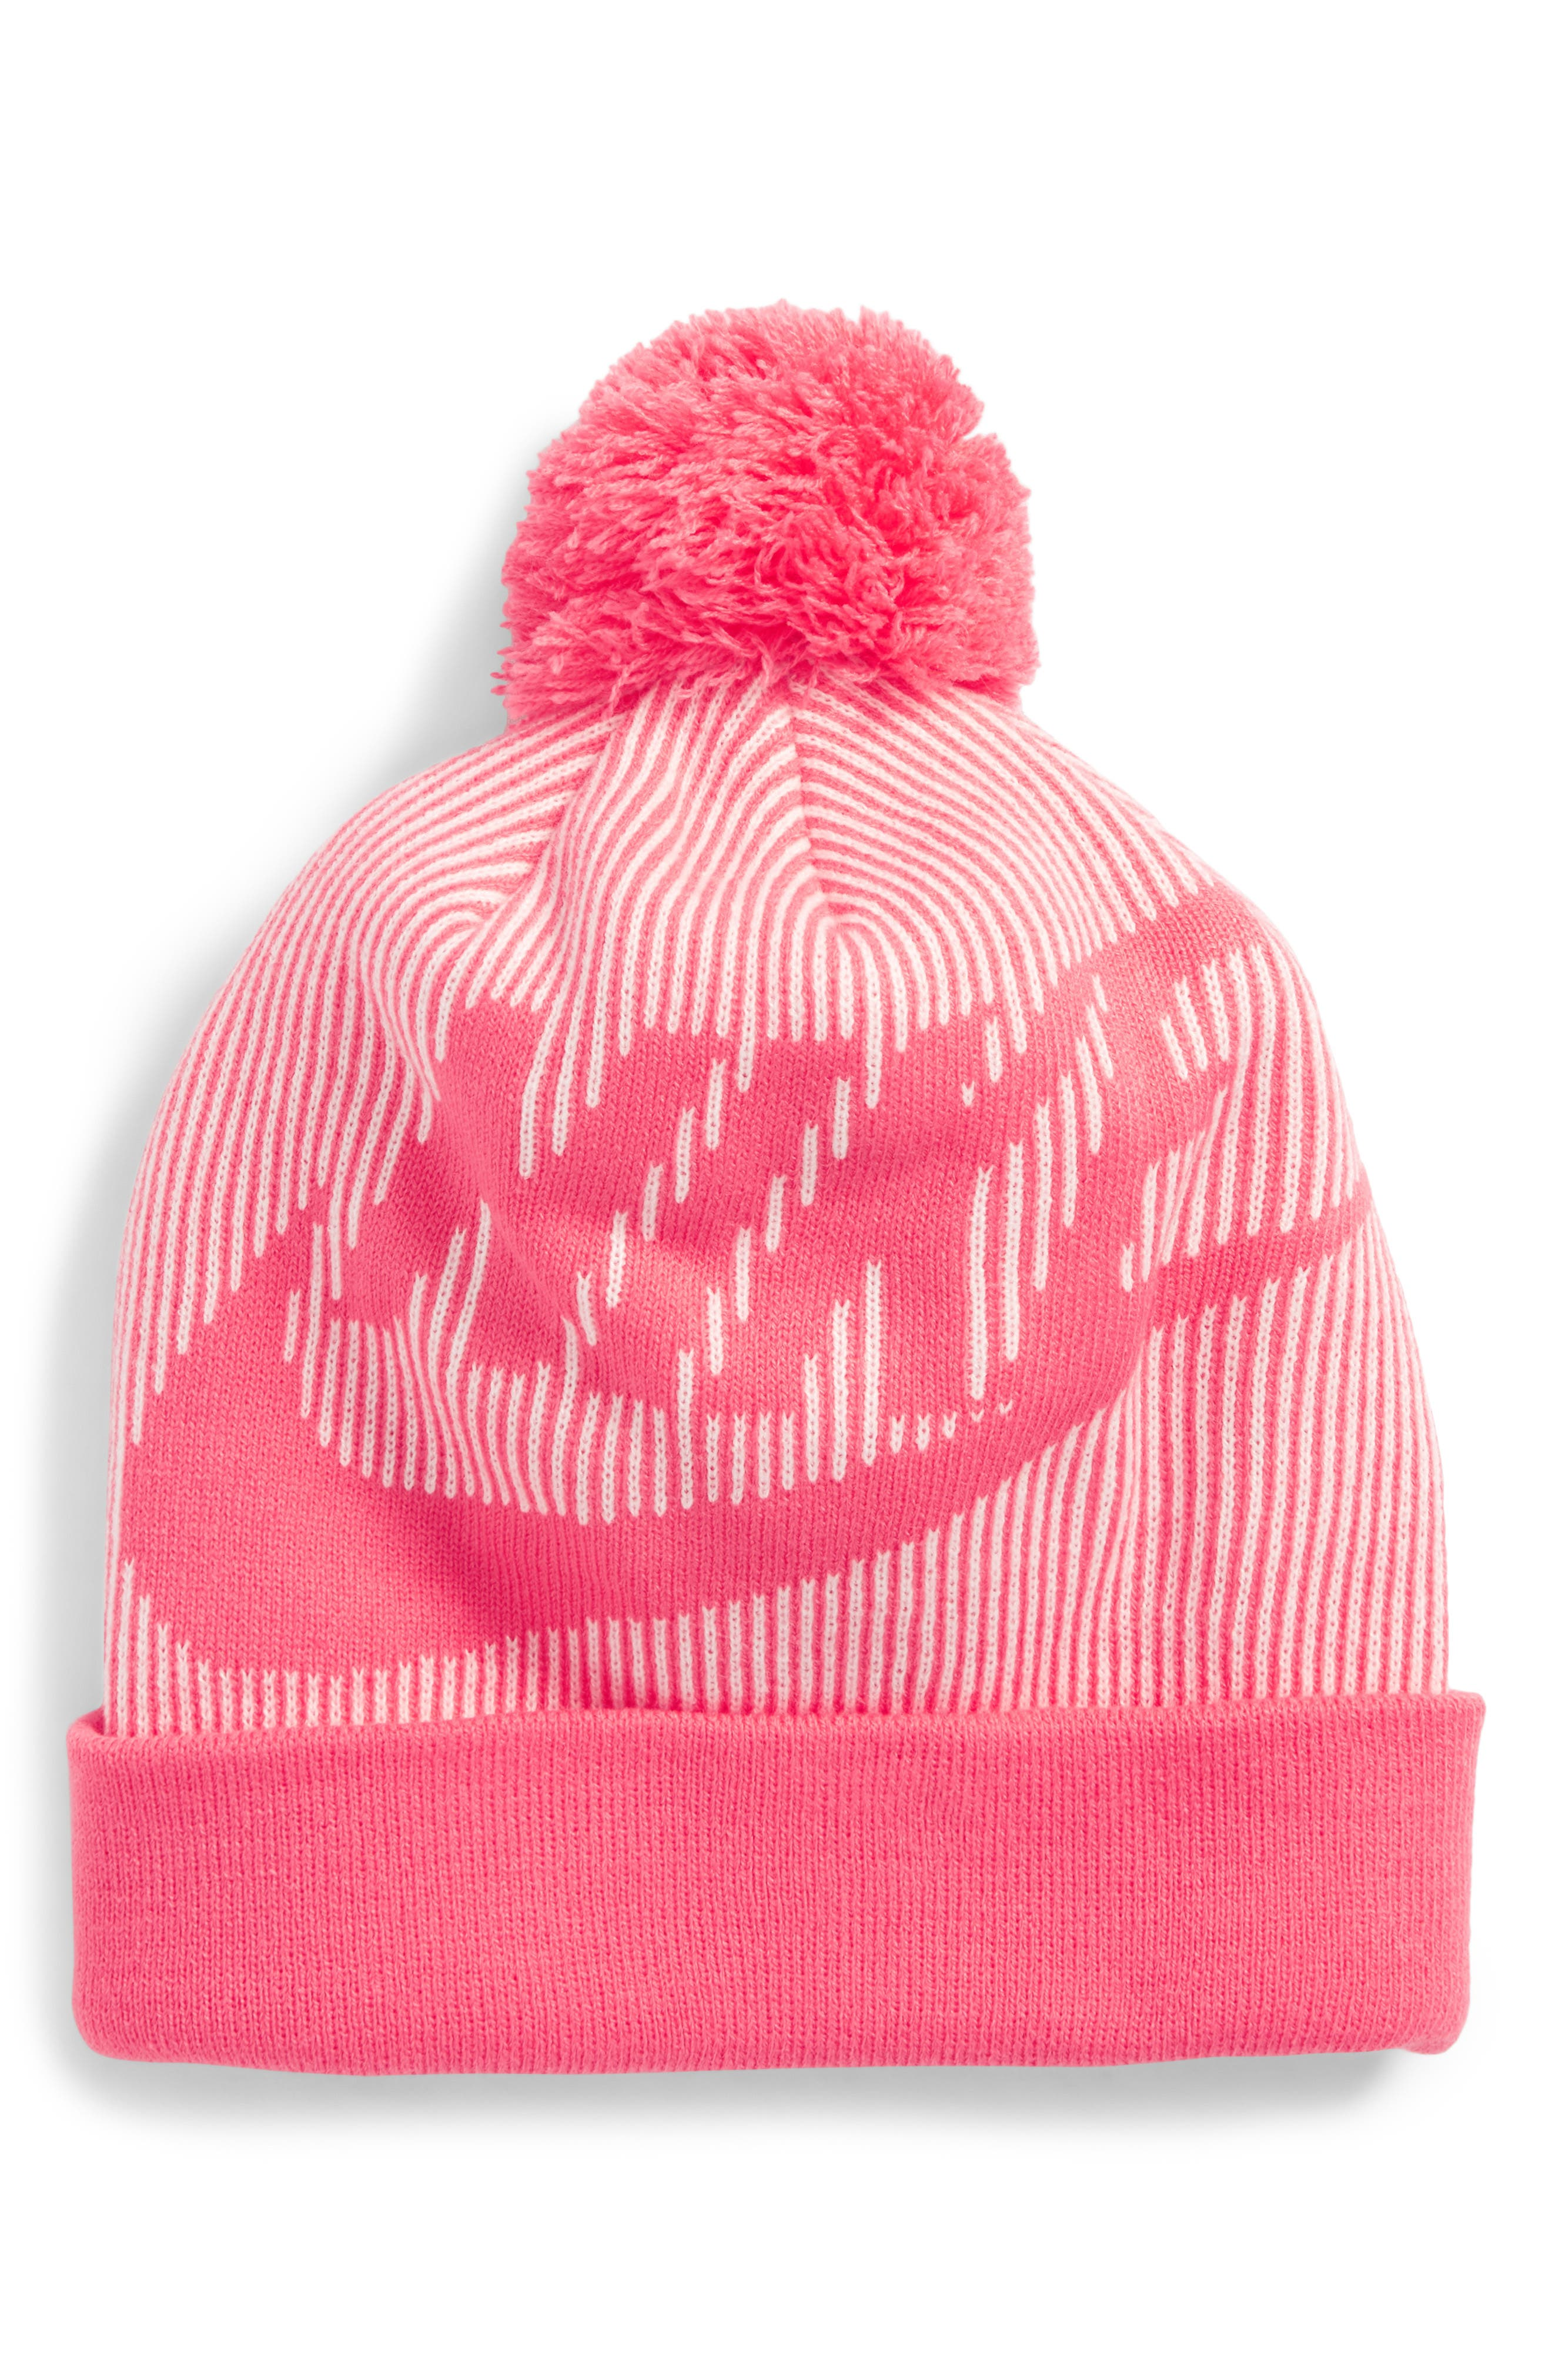 Sportswear Beanie with Removable Pom,                             Main thumbnail 1, color,                             662